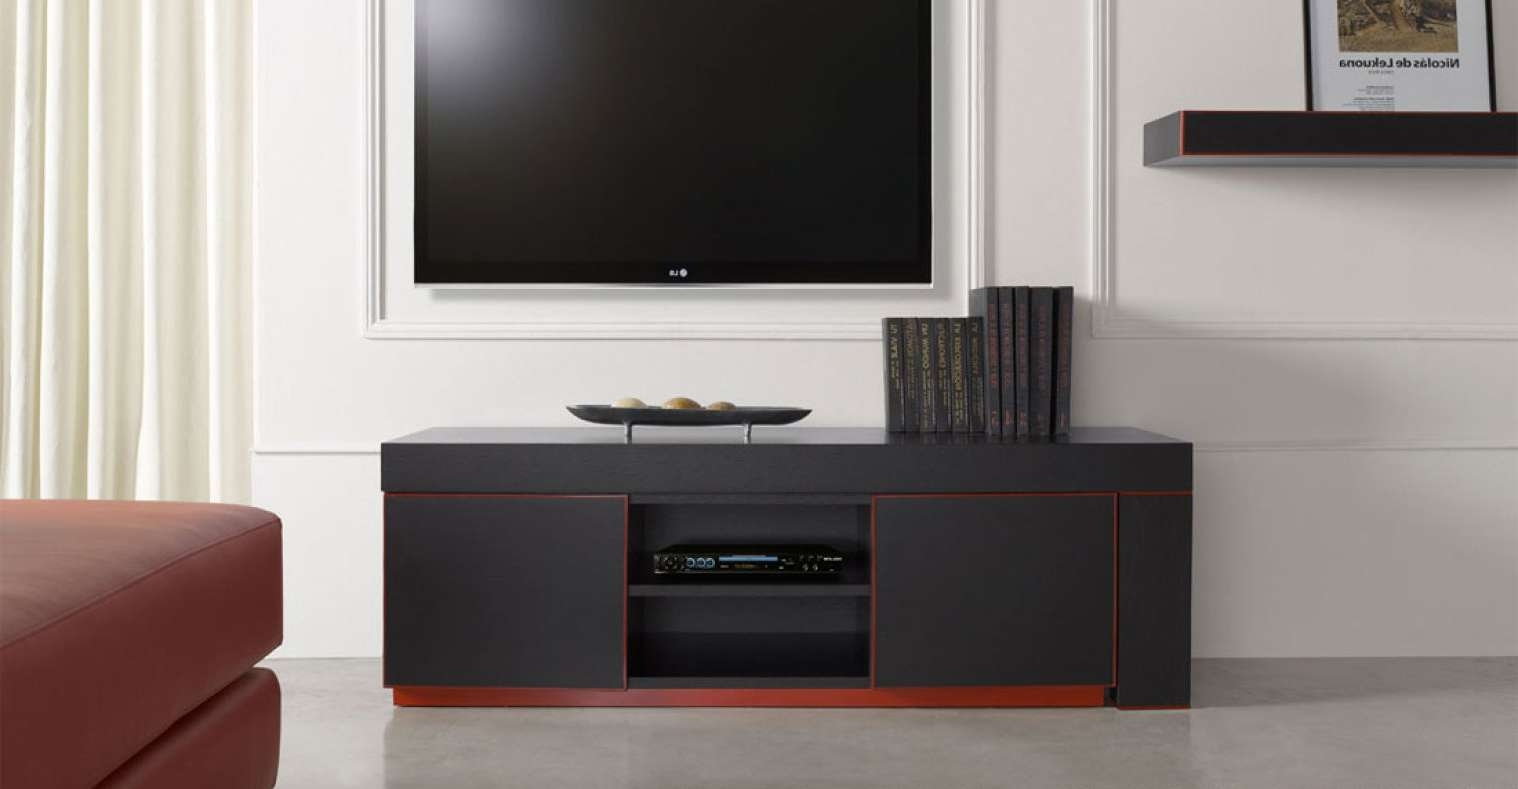 Tv : Awful Lockable Tv Stands Intriguing Lockable Tv Stands With Regard To Lockable Tv Stands (View 10 of 20)